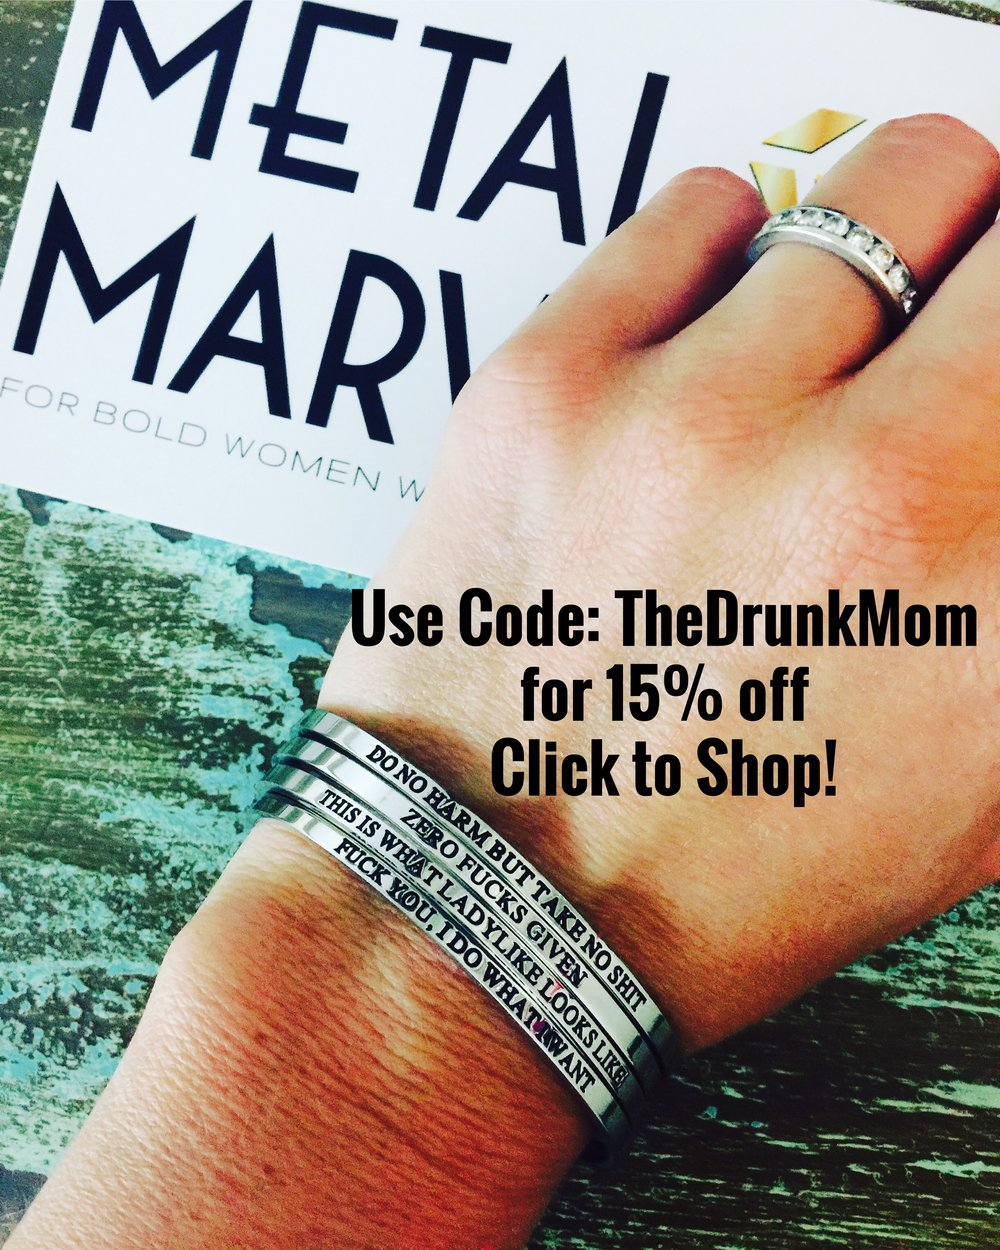 Who doesn't want jewelry to match ya' mouth!? Metal Marvels is a partner company that we love